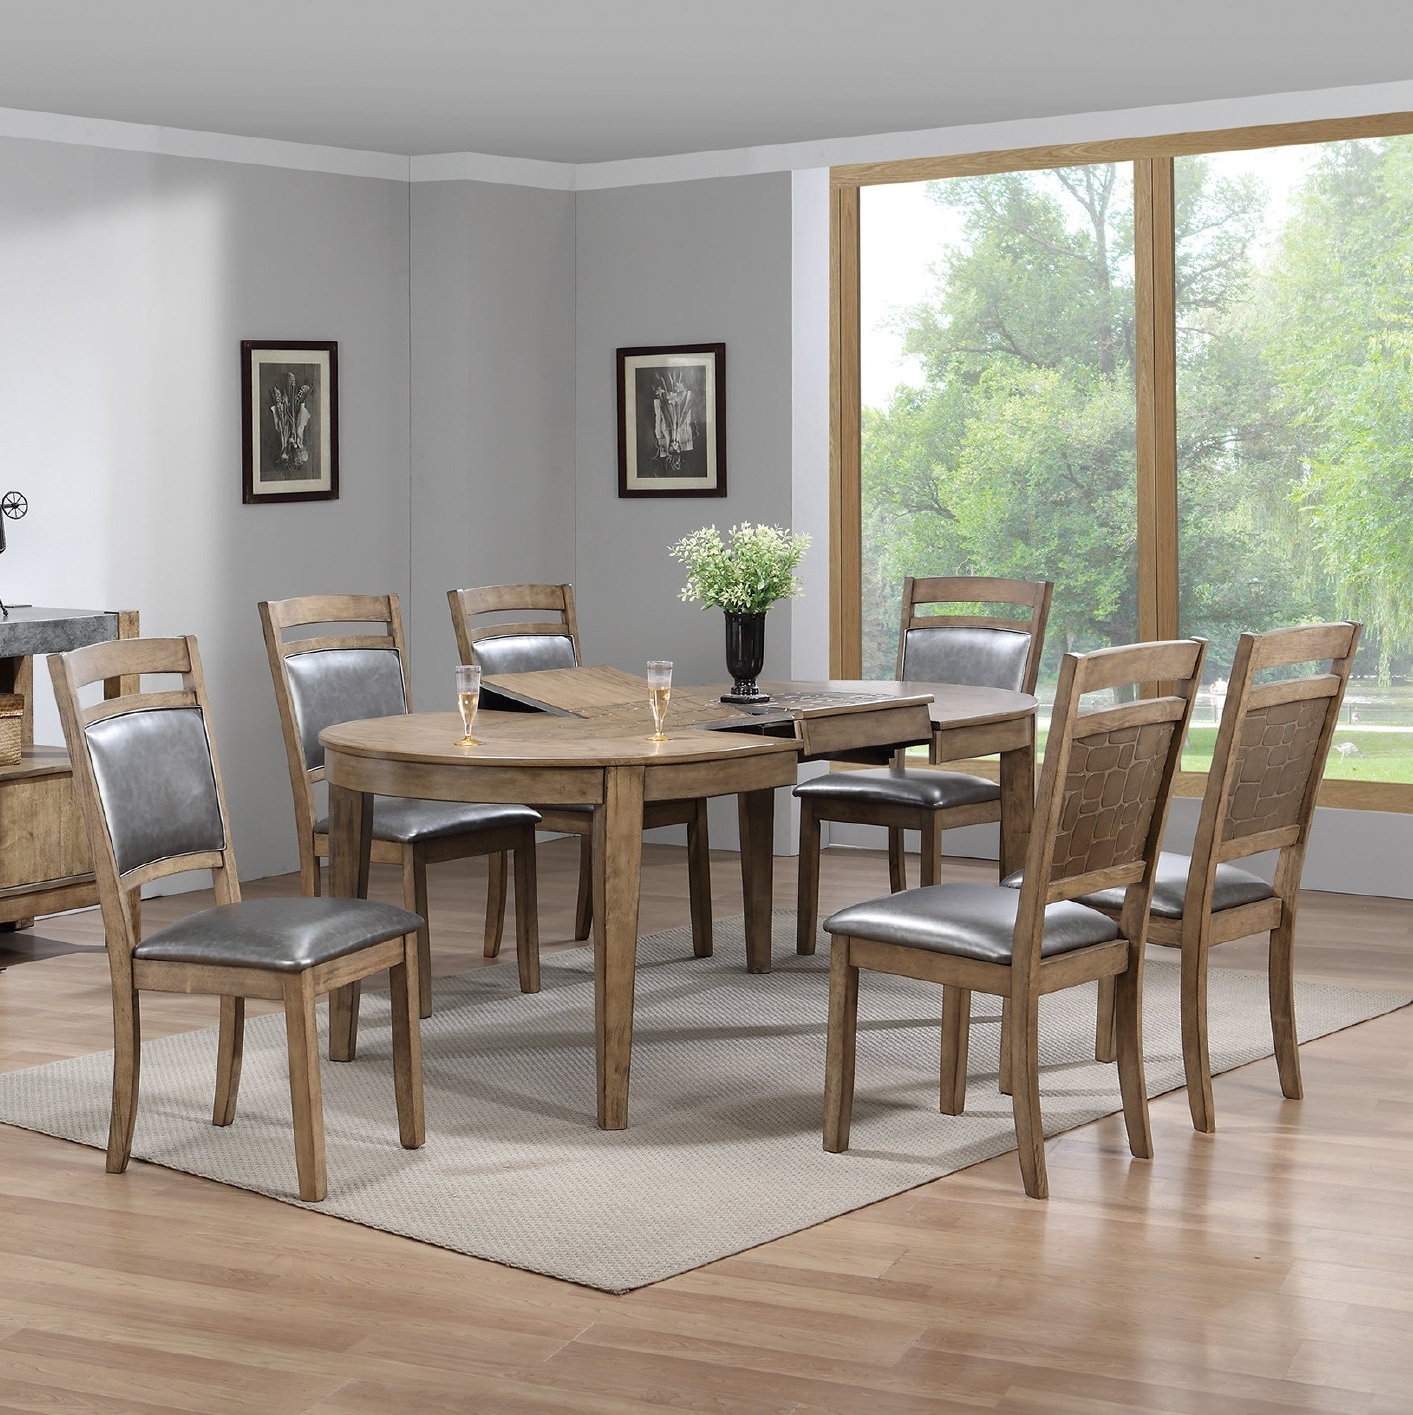 Newest Caira 7 Piece Rectangular Dining Sets With Upholstered Side Chairs regarding Gracie Oaks Warthen 7 Piece Dining Set